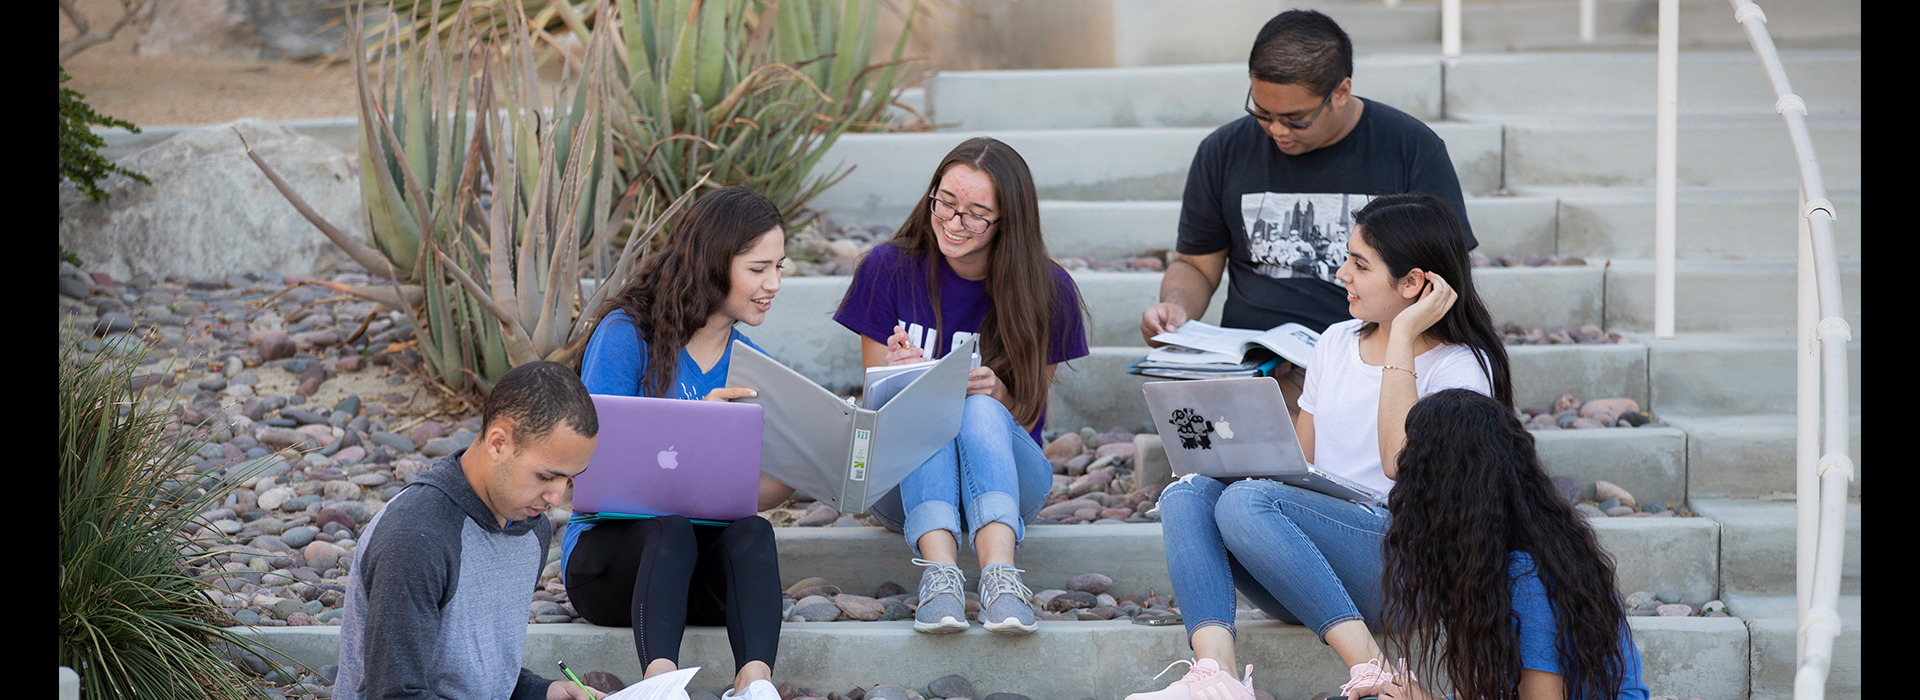 U.S. News & World Report lists CSUSB among the best in the West